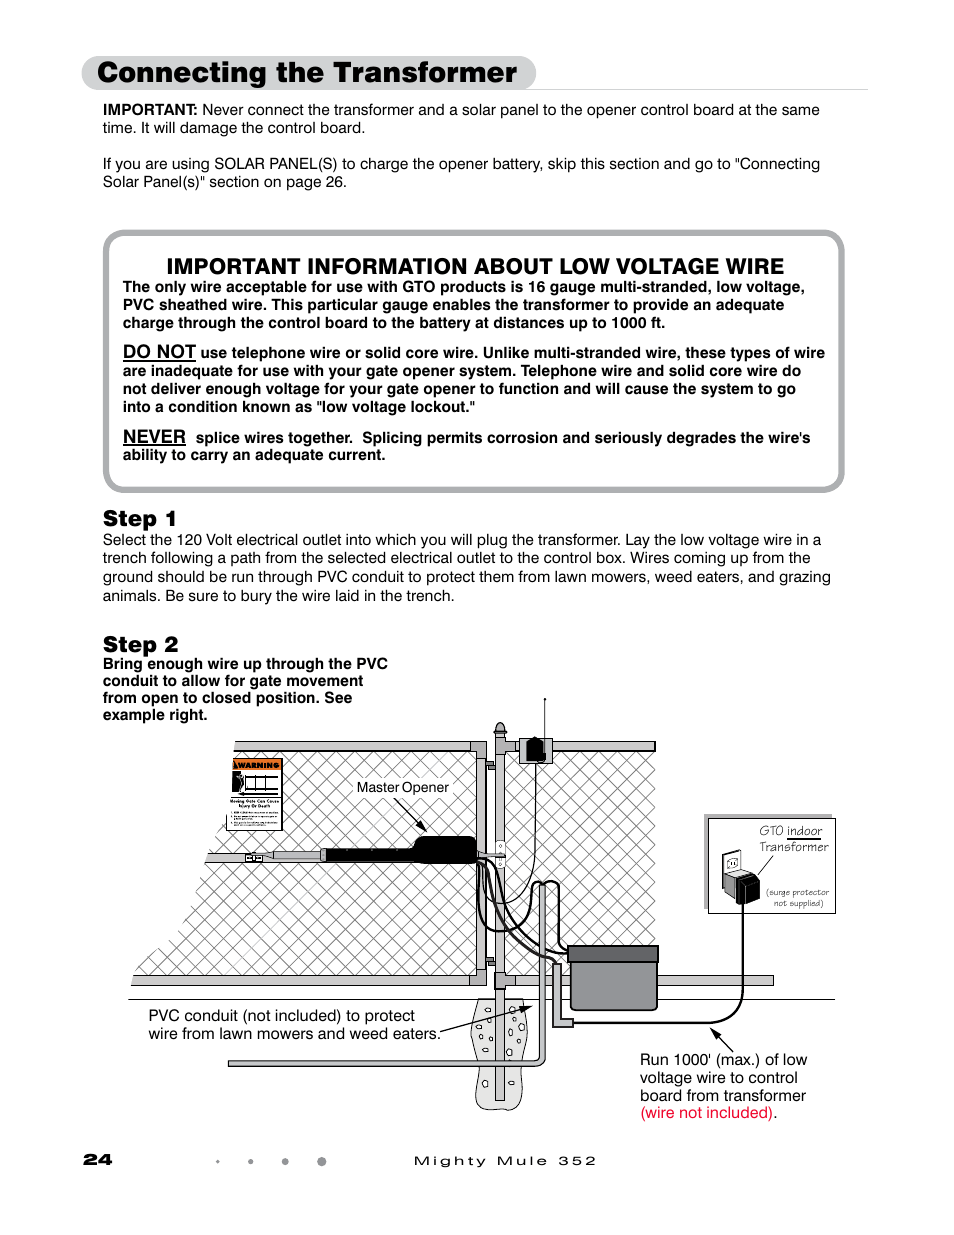 hight resolution of connecting the transformer step 1 step 2 gto mighty mule 352 user manual page 28 48